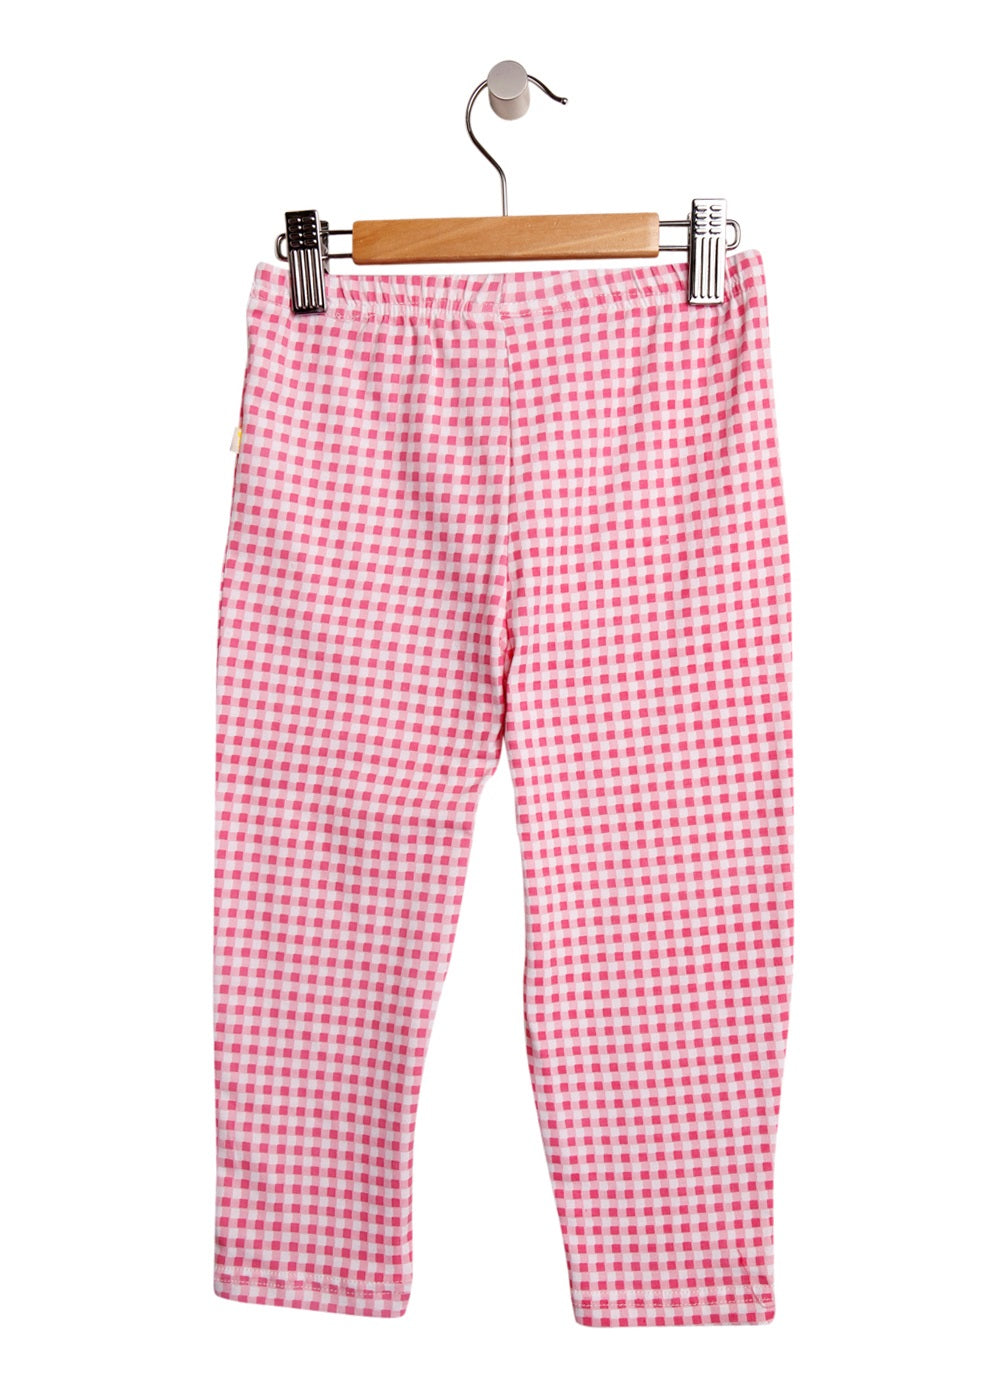 3/4 Length Gingham Girls Pink Leggings